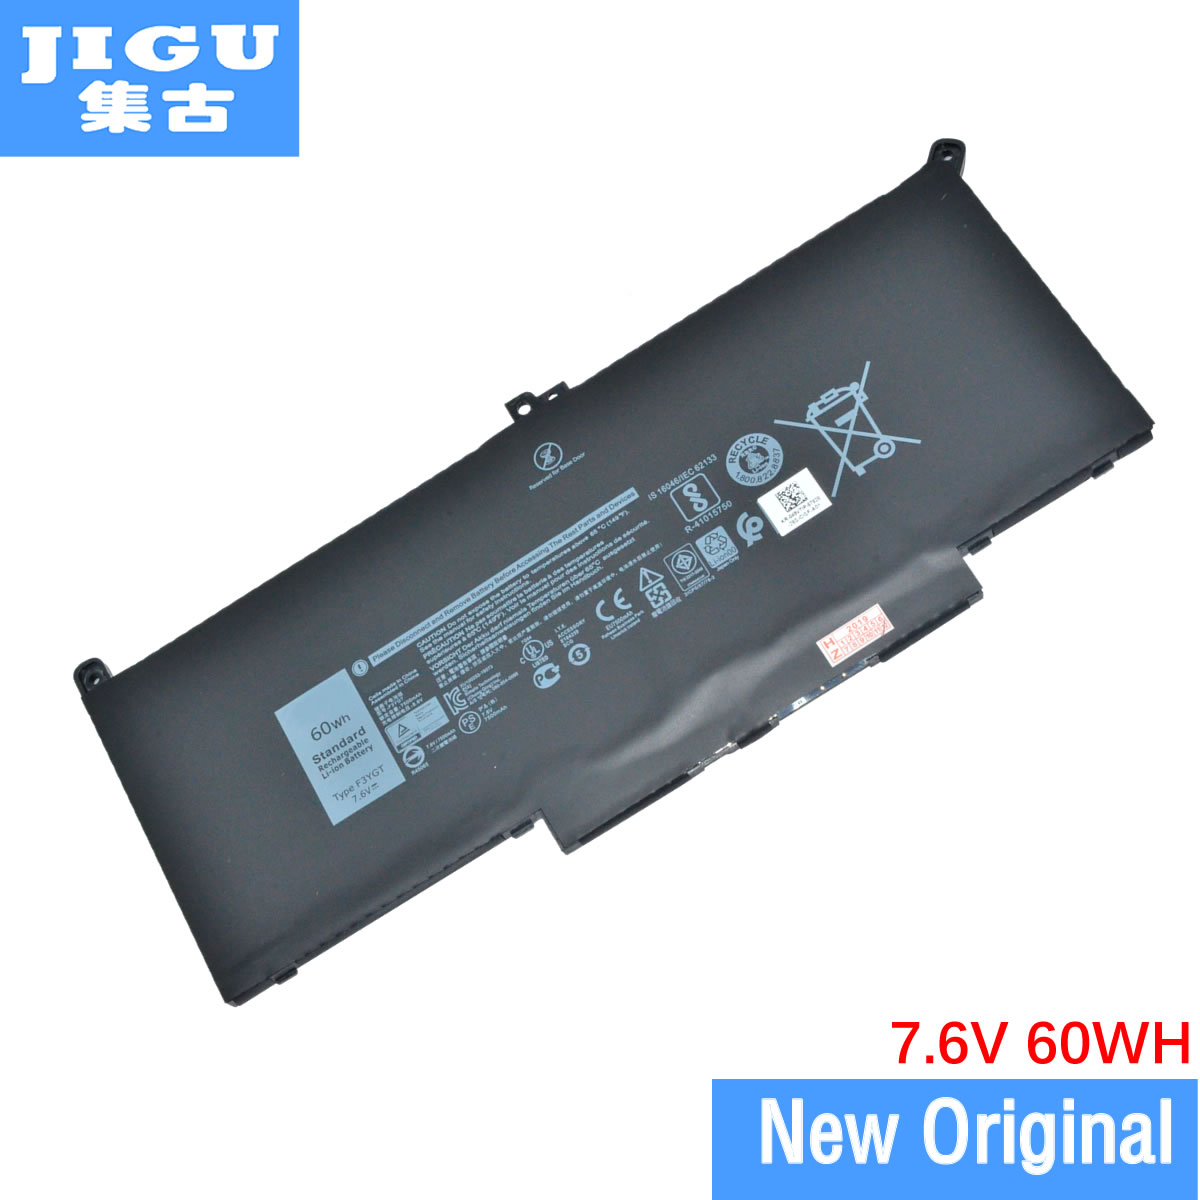 JIGU Original Laptop Battery 2X39G F3YGT For <font><b>DELL</b></font> For Latitude 12 7000 7290 13 7000 7390 7380 <font><b>7490</b></font> 7.6V 60WH image